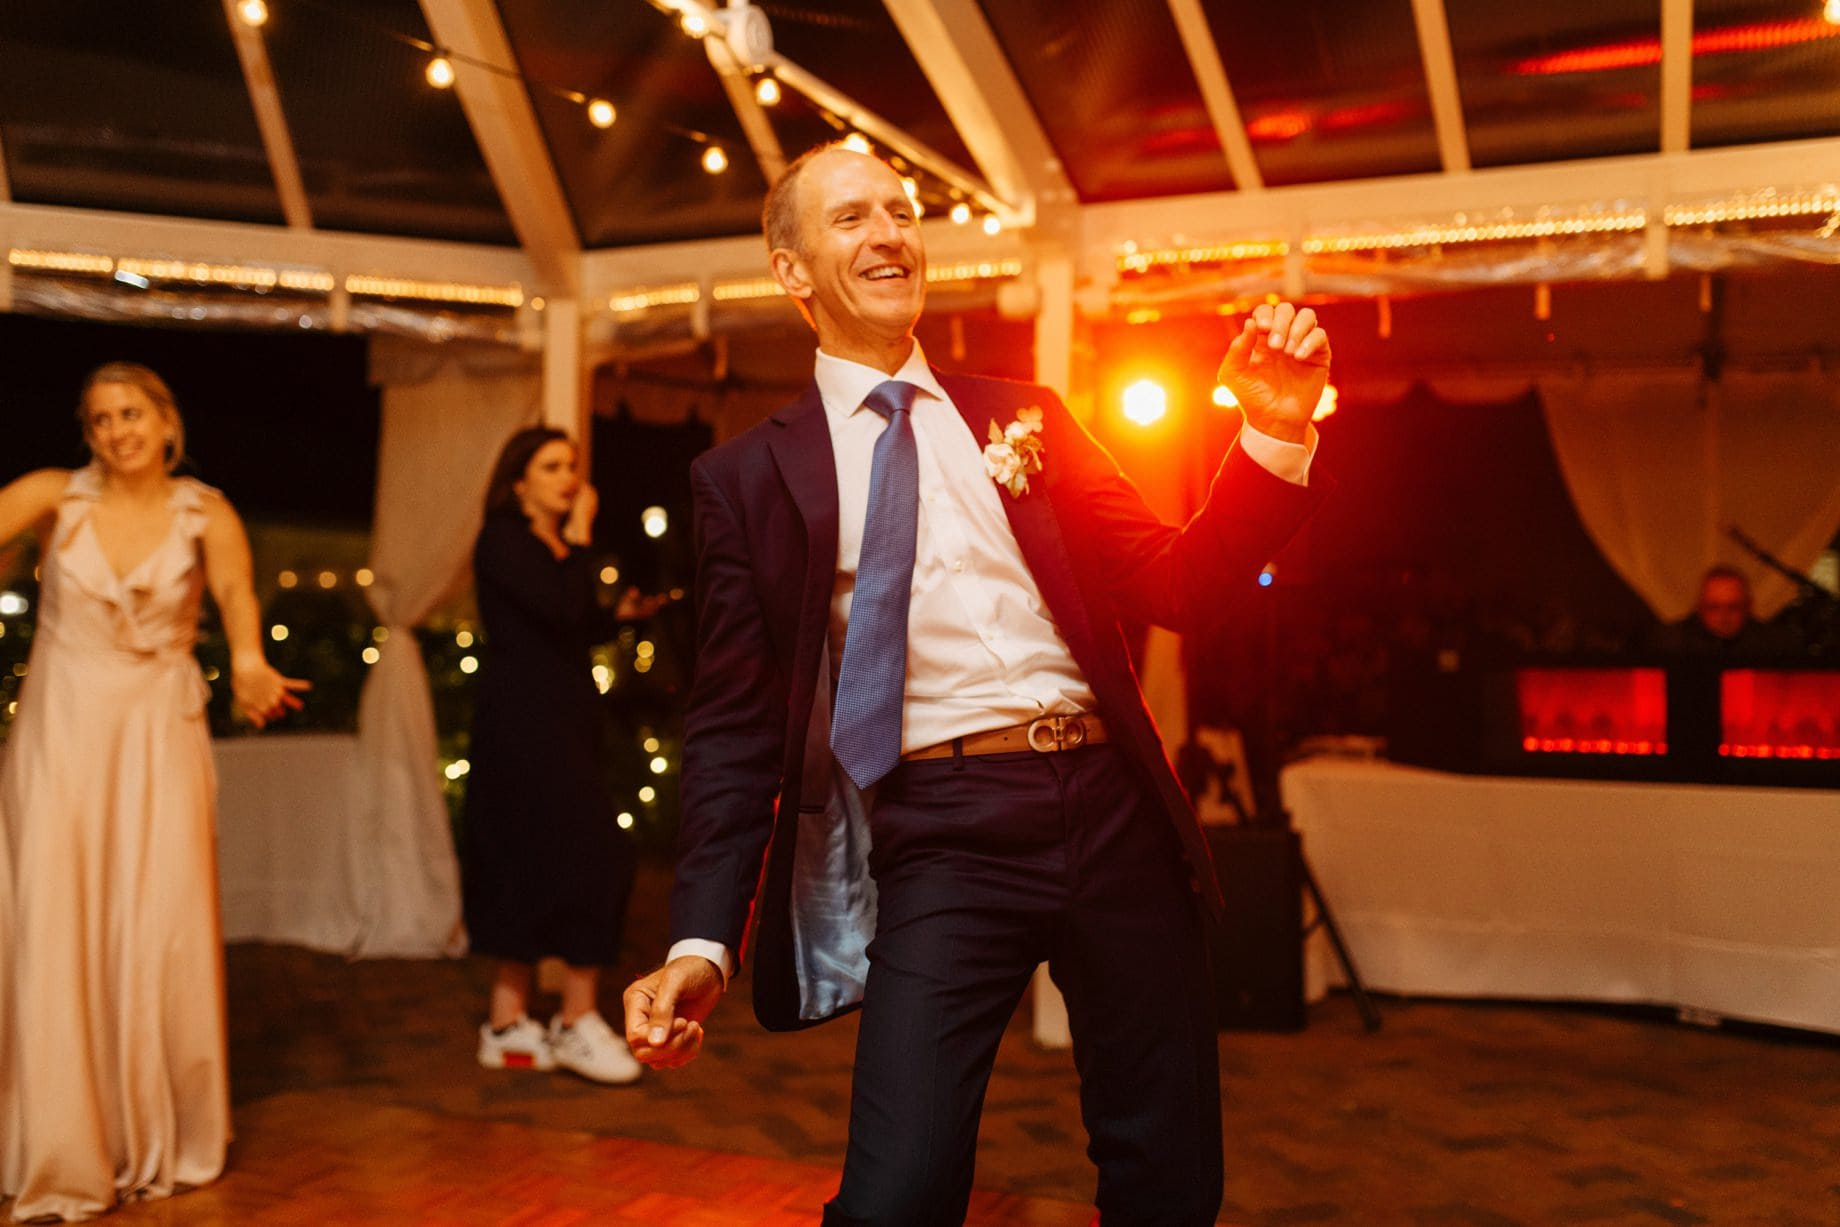 father of the bride cutting a rug